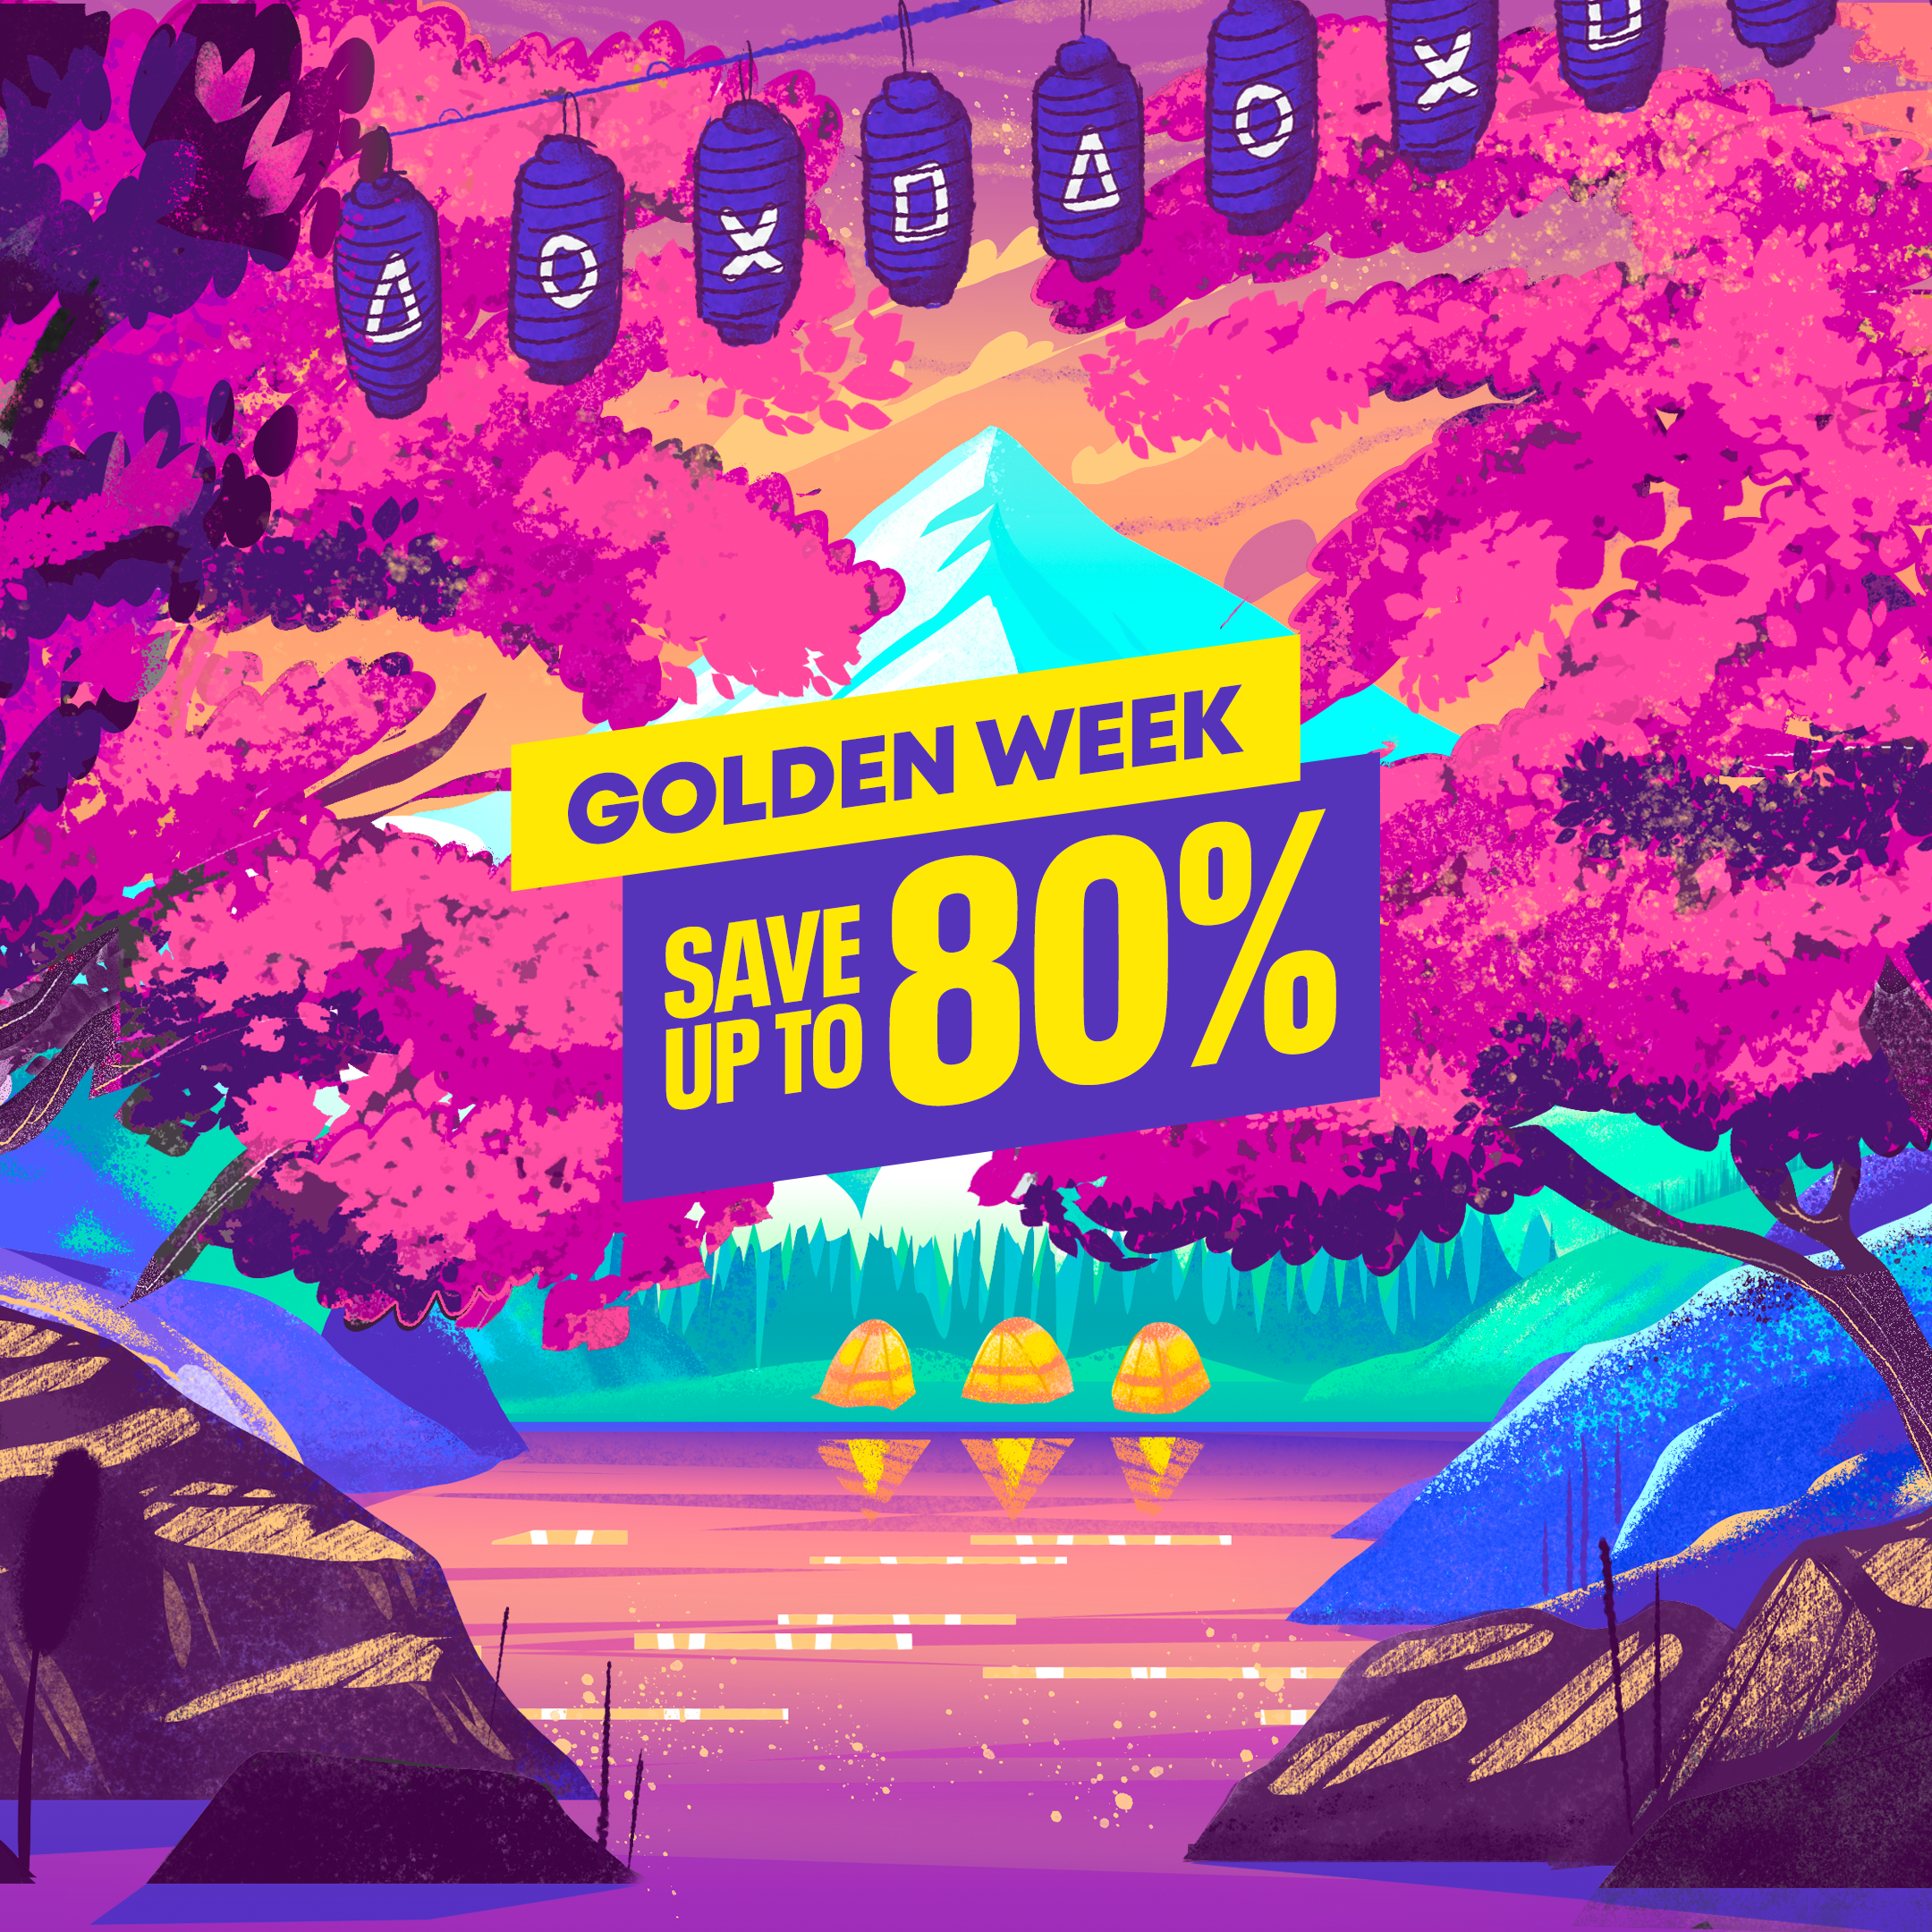 [PROMO] Golden Week